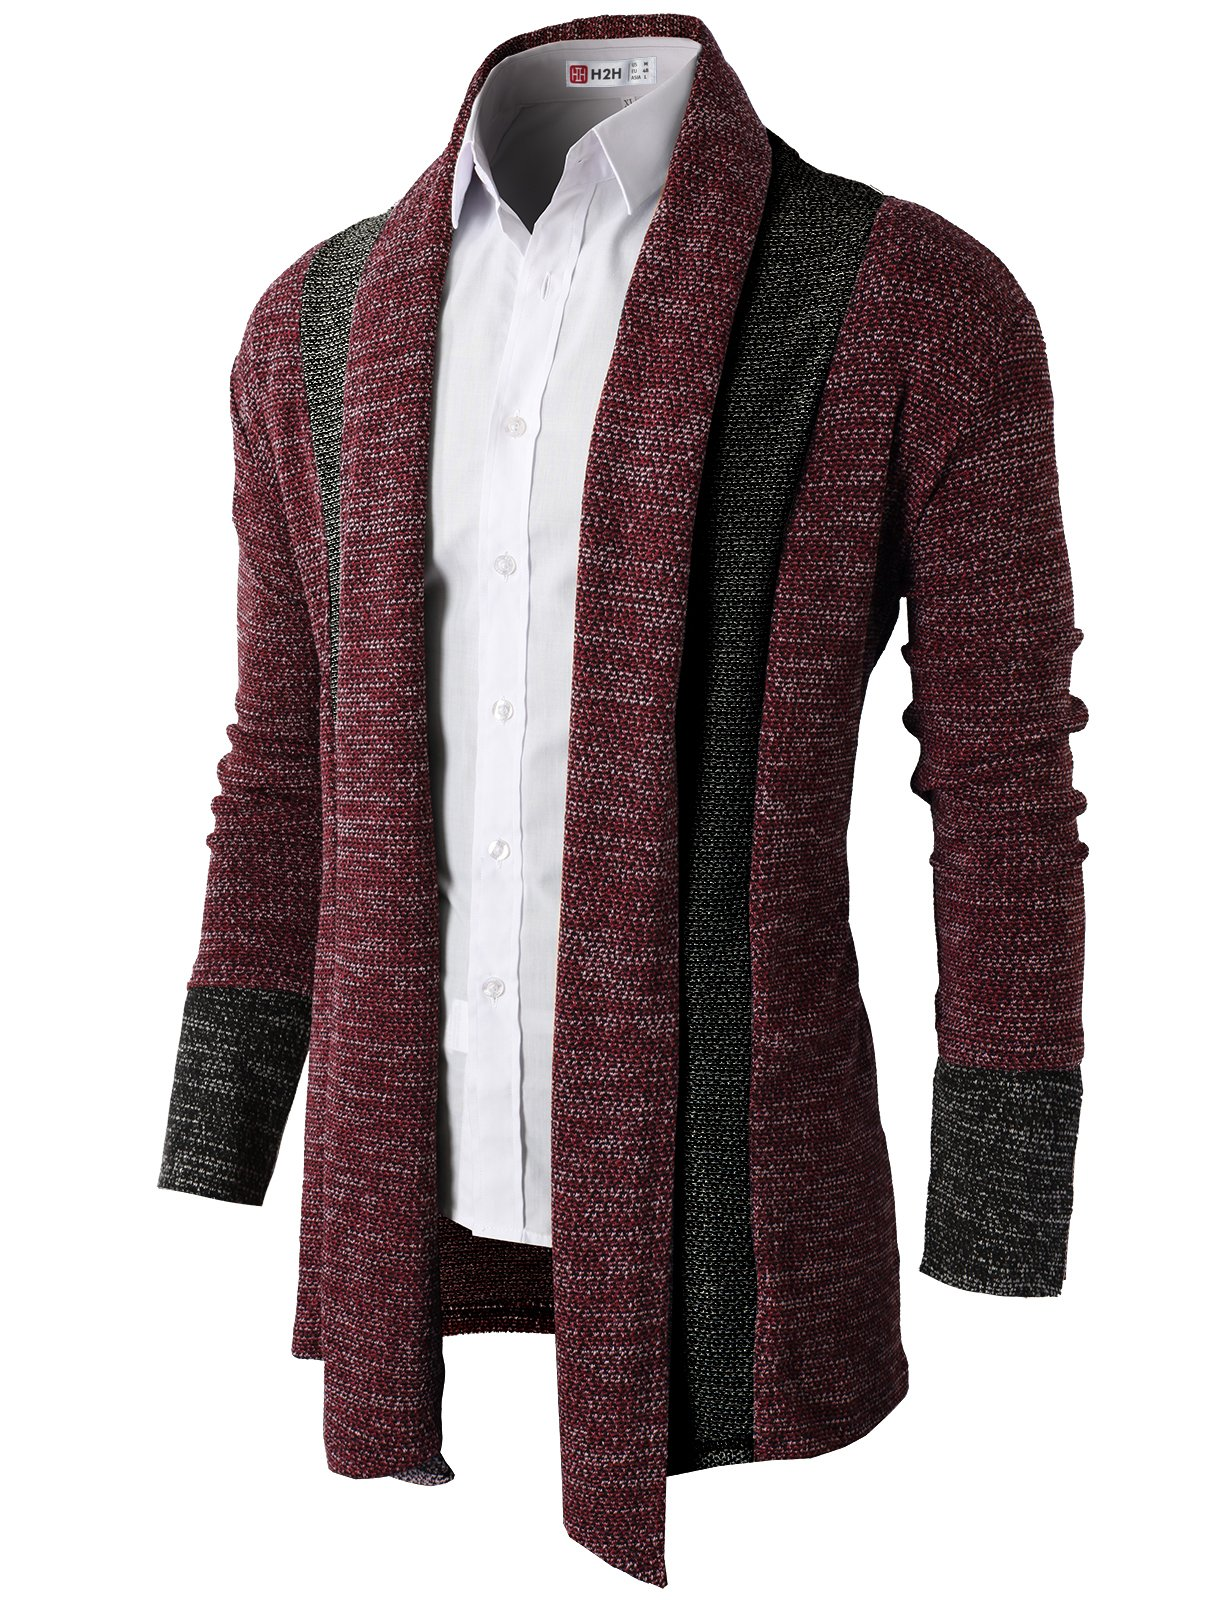 H2H Men's 100% Pure Cashmere Button Front Long Sleeve Cardigan Sweater RED US M/Asia L (KMOCAL012)